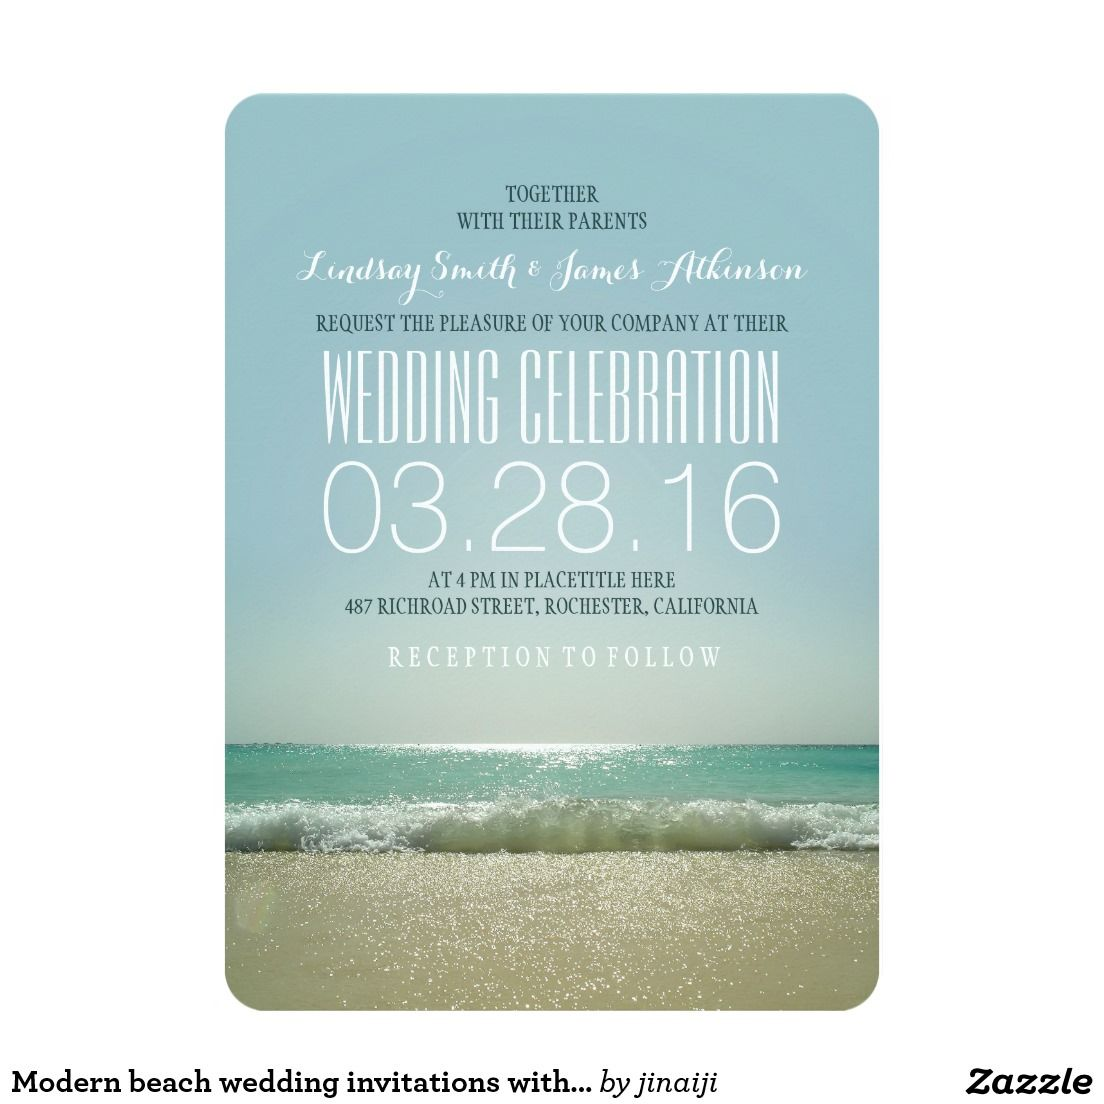 Modern beach wedding invitations with teal sea | Beach wedding ...